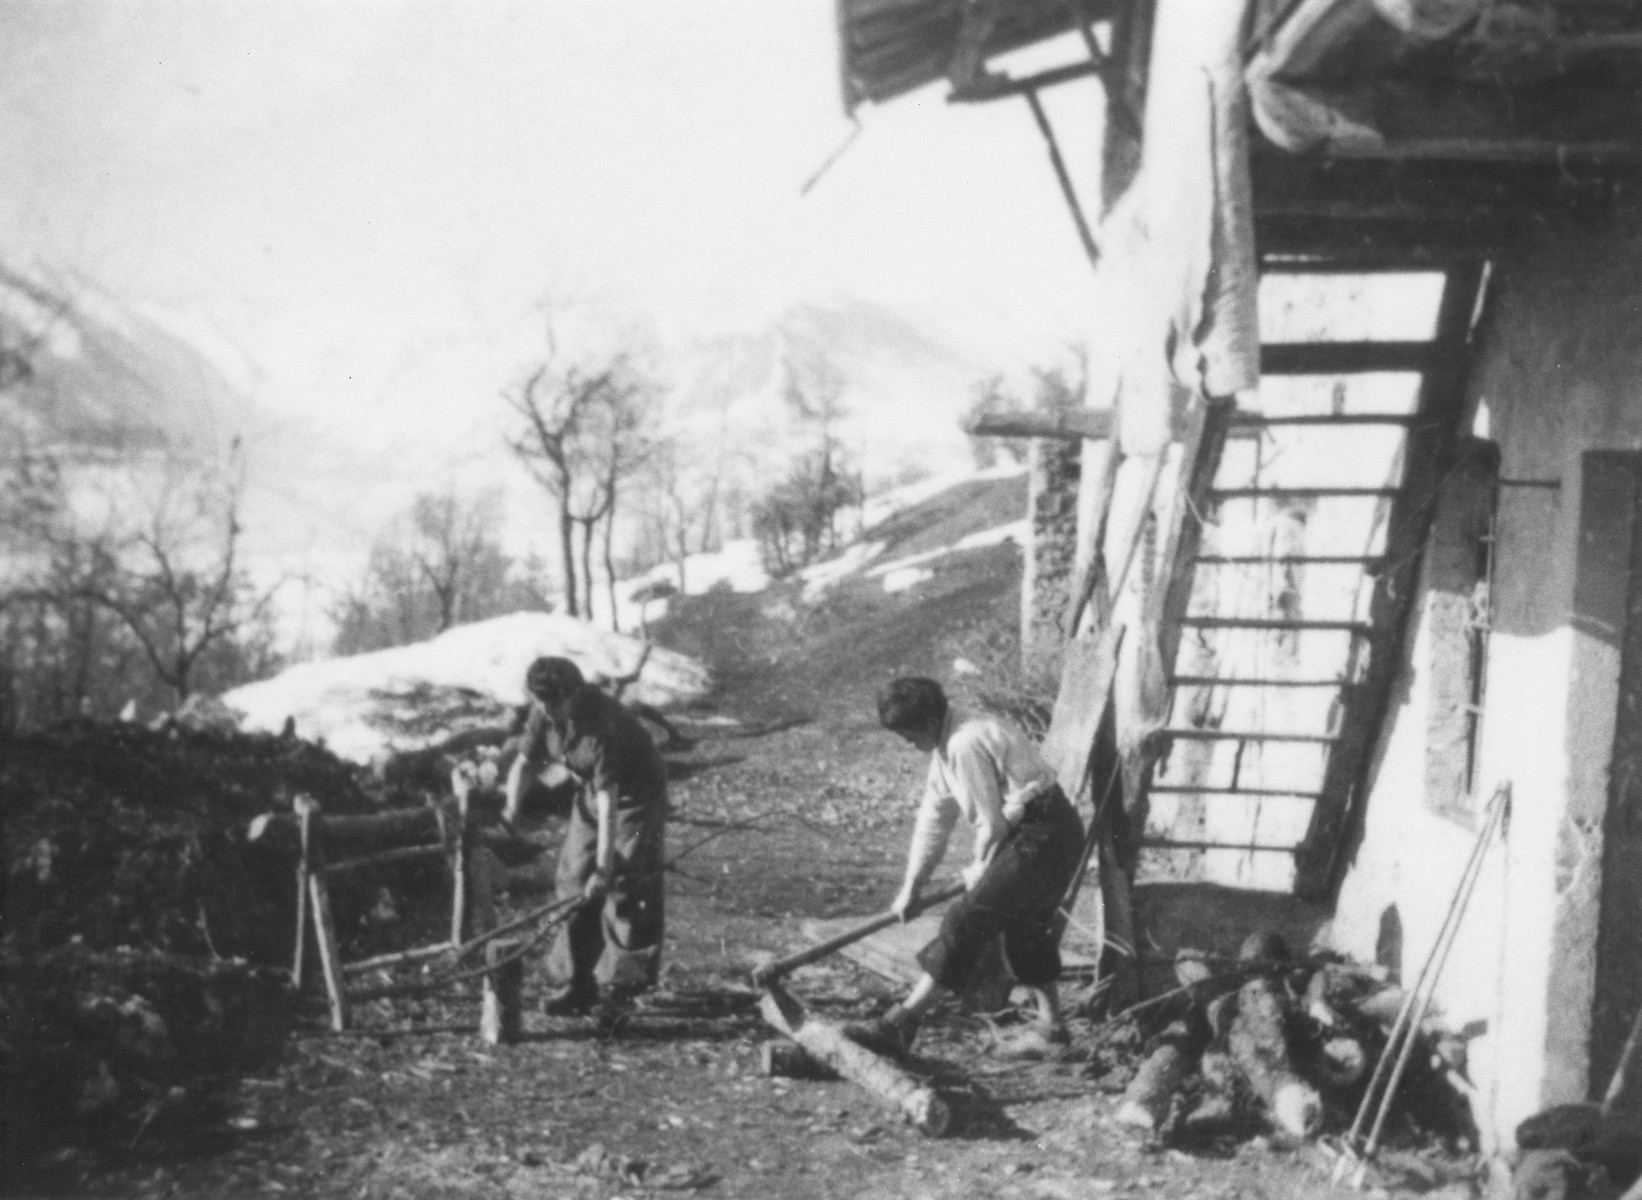 Jewish refugees work in a farm where they were hiding in Valle Stura, Italy after crossing over the border from France.